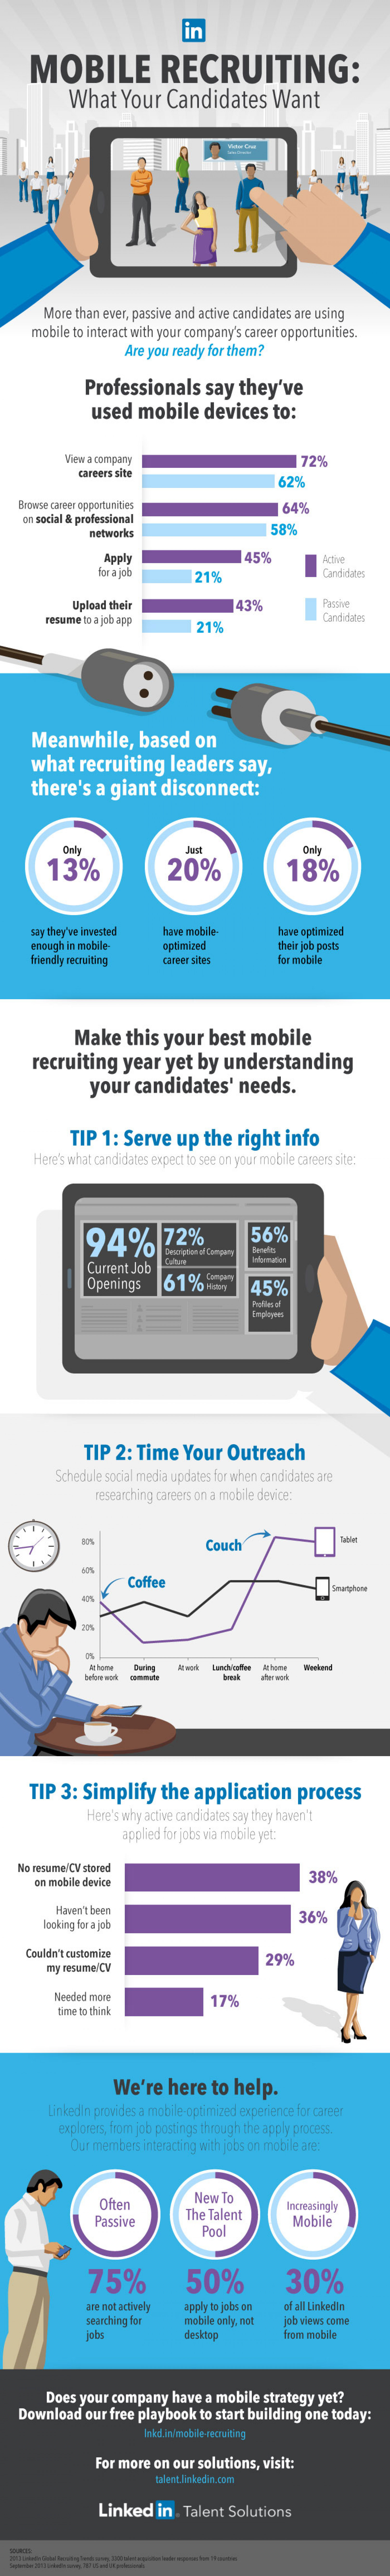 Mobile Recruiting: What Your Candidates Want Infographic